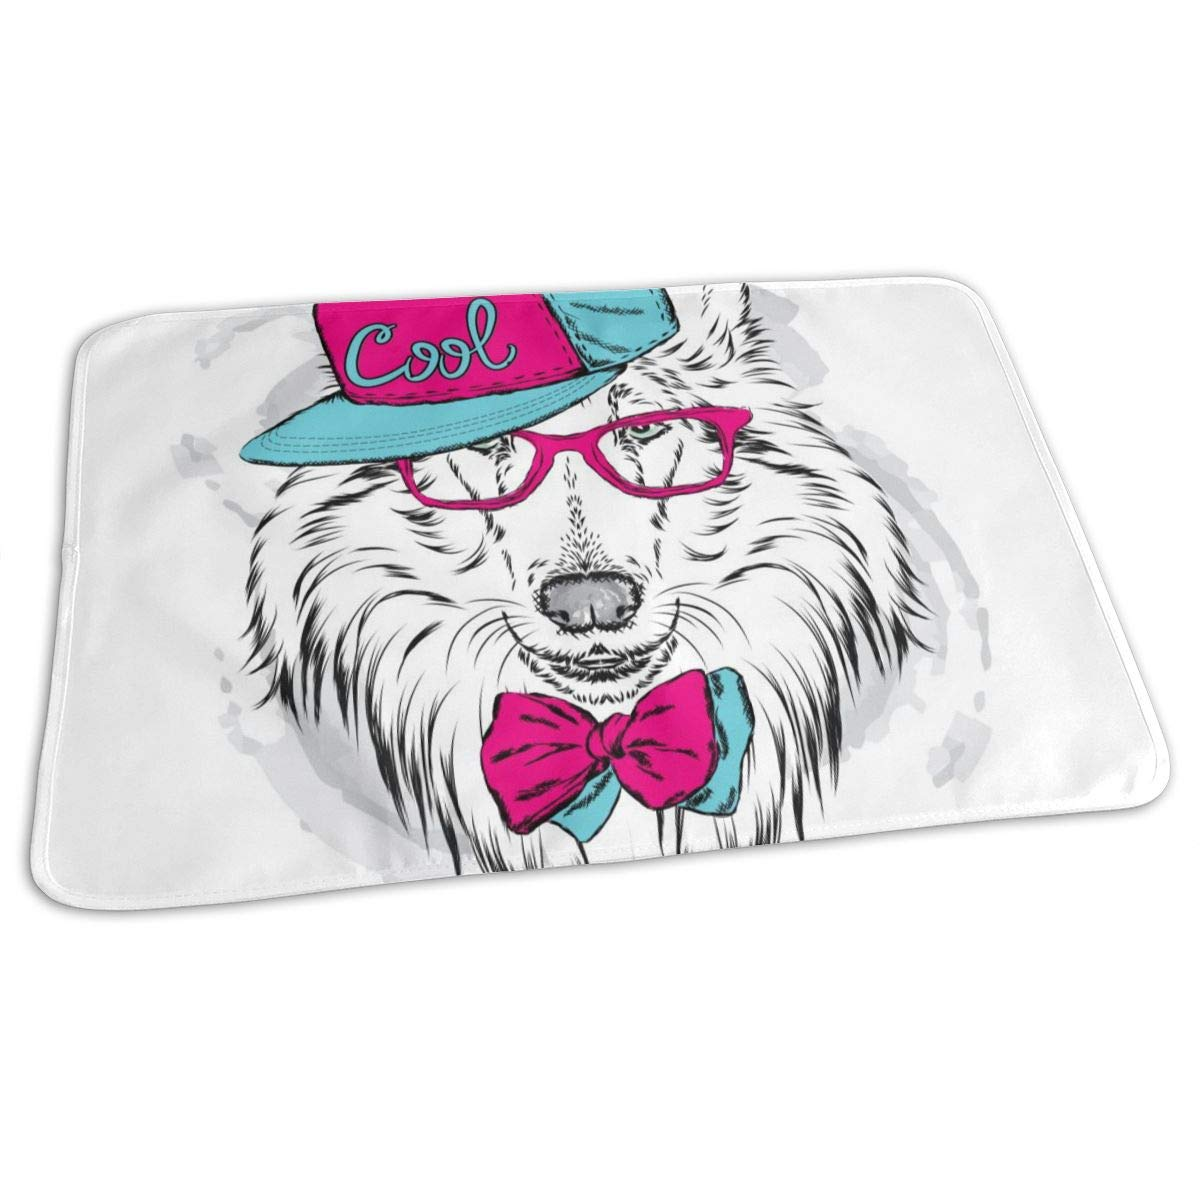 Osvbs Lovely Baby Reusable Waterproof Portable Collie Wearing A Cap and Sunglasses Changing Pad Home Travel 27.5''x19.7'' by Osvbs